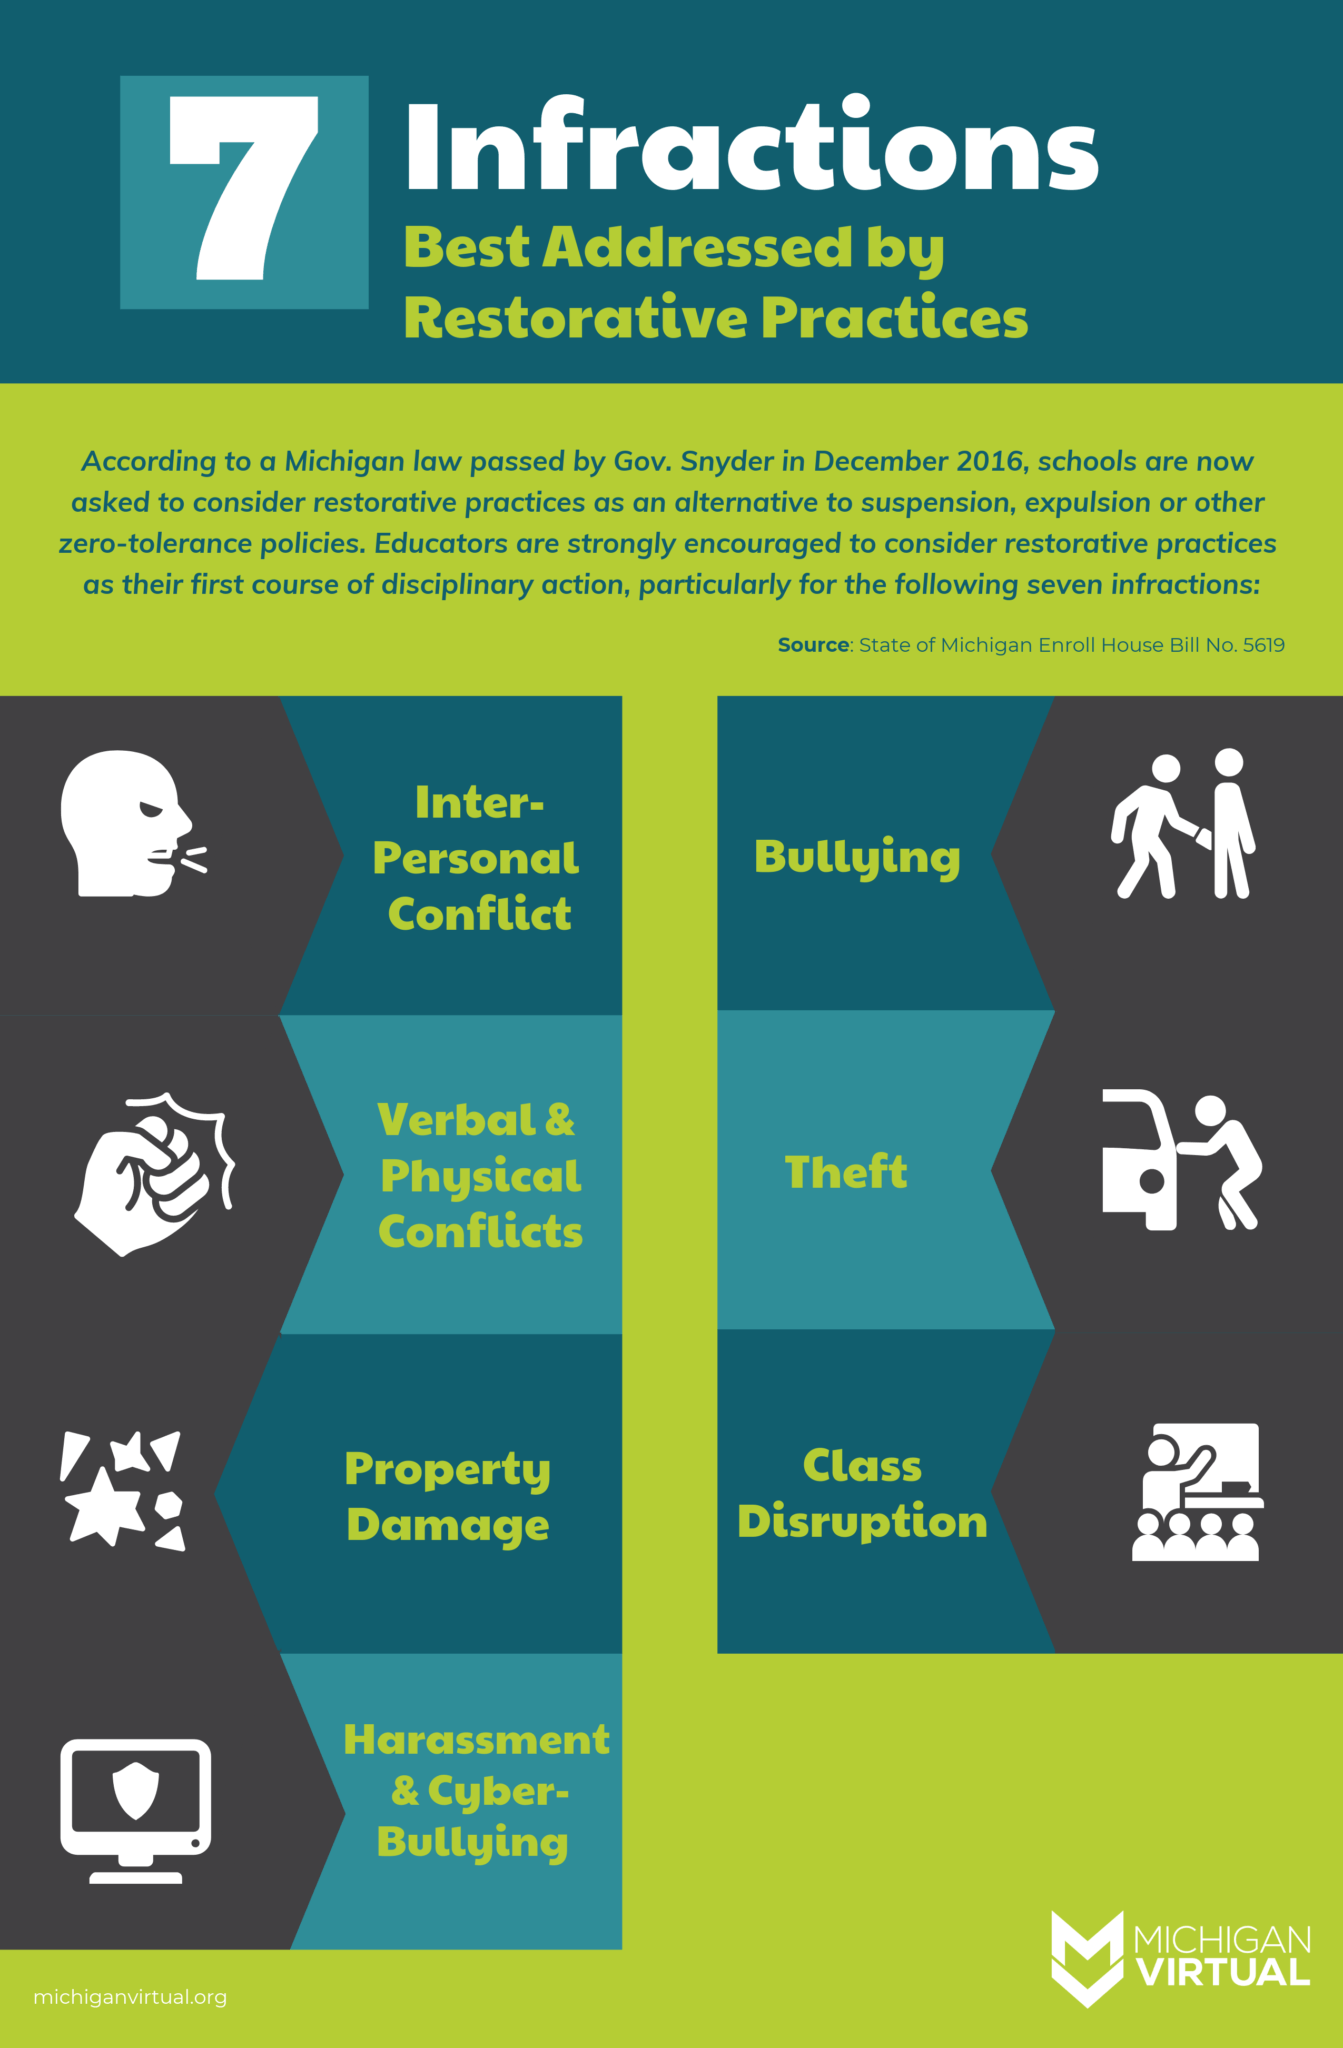 Infographic 7 Infractions Best Addressed By Restorative